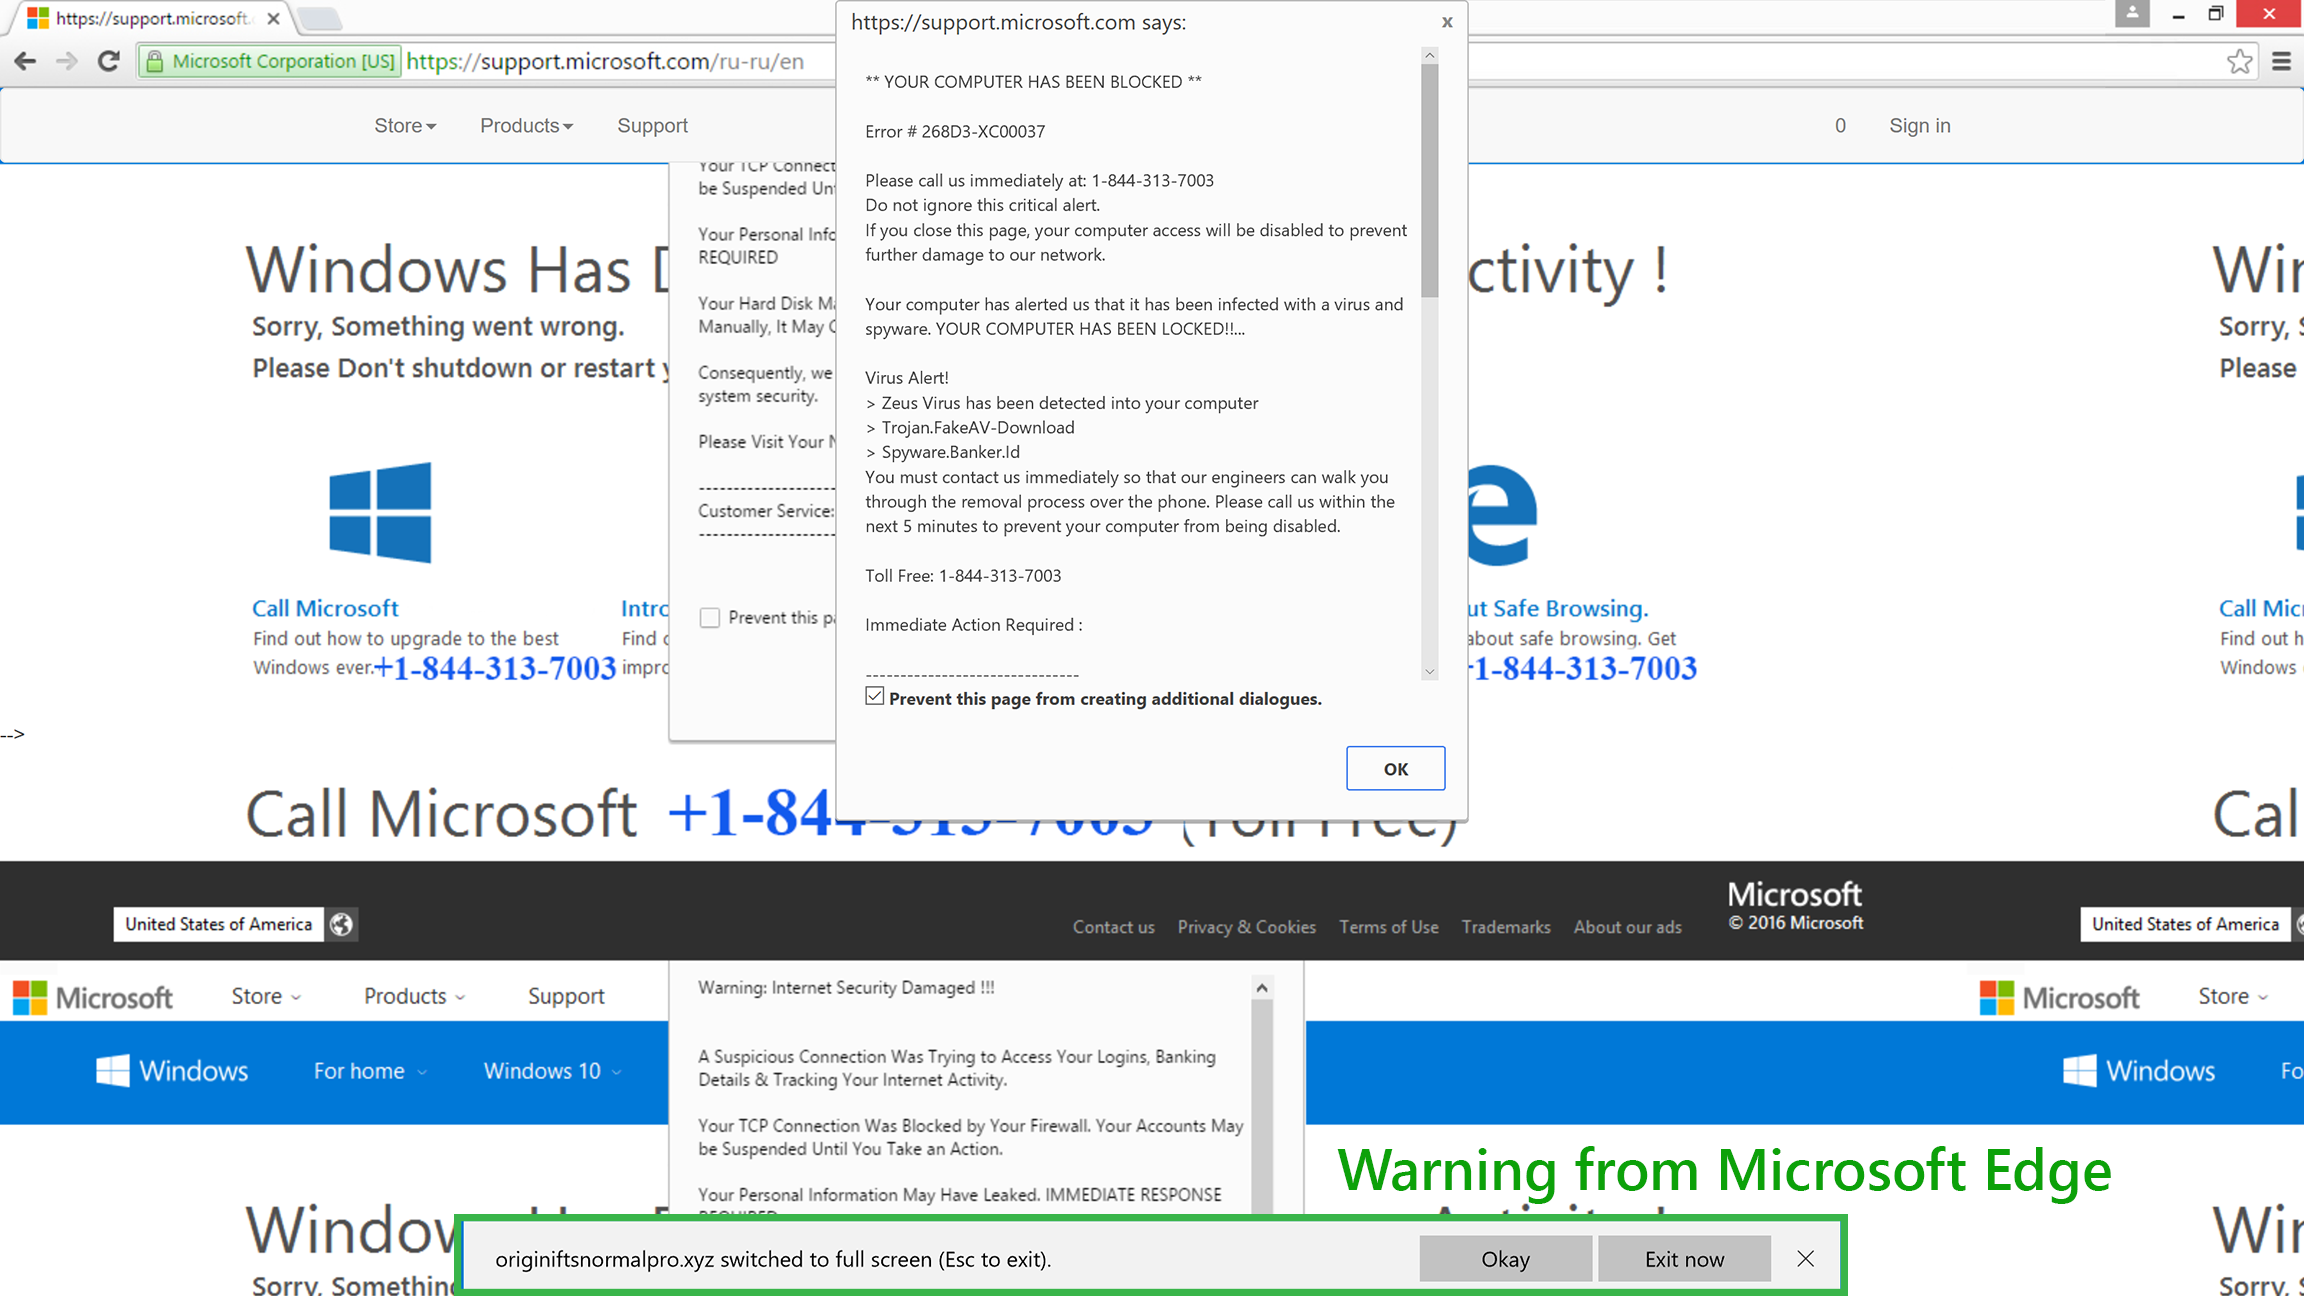 tech support scam full screen microsoft edge message